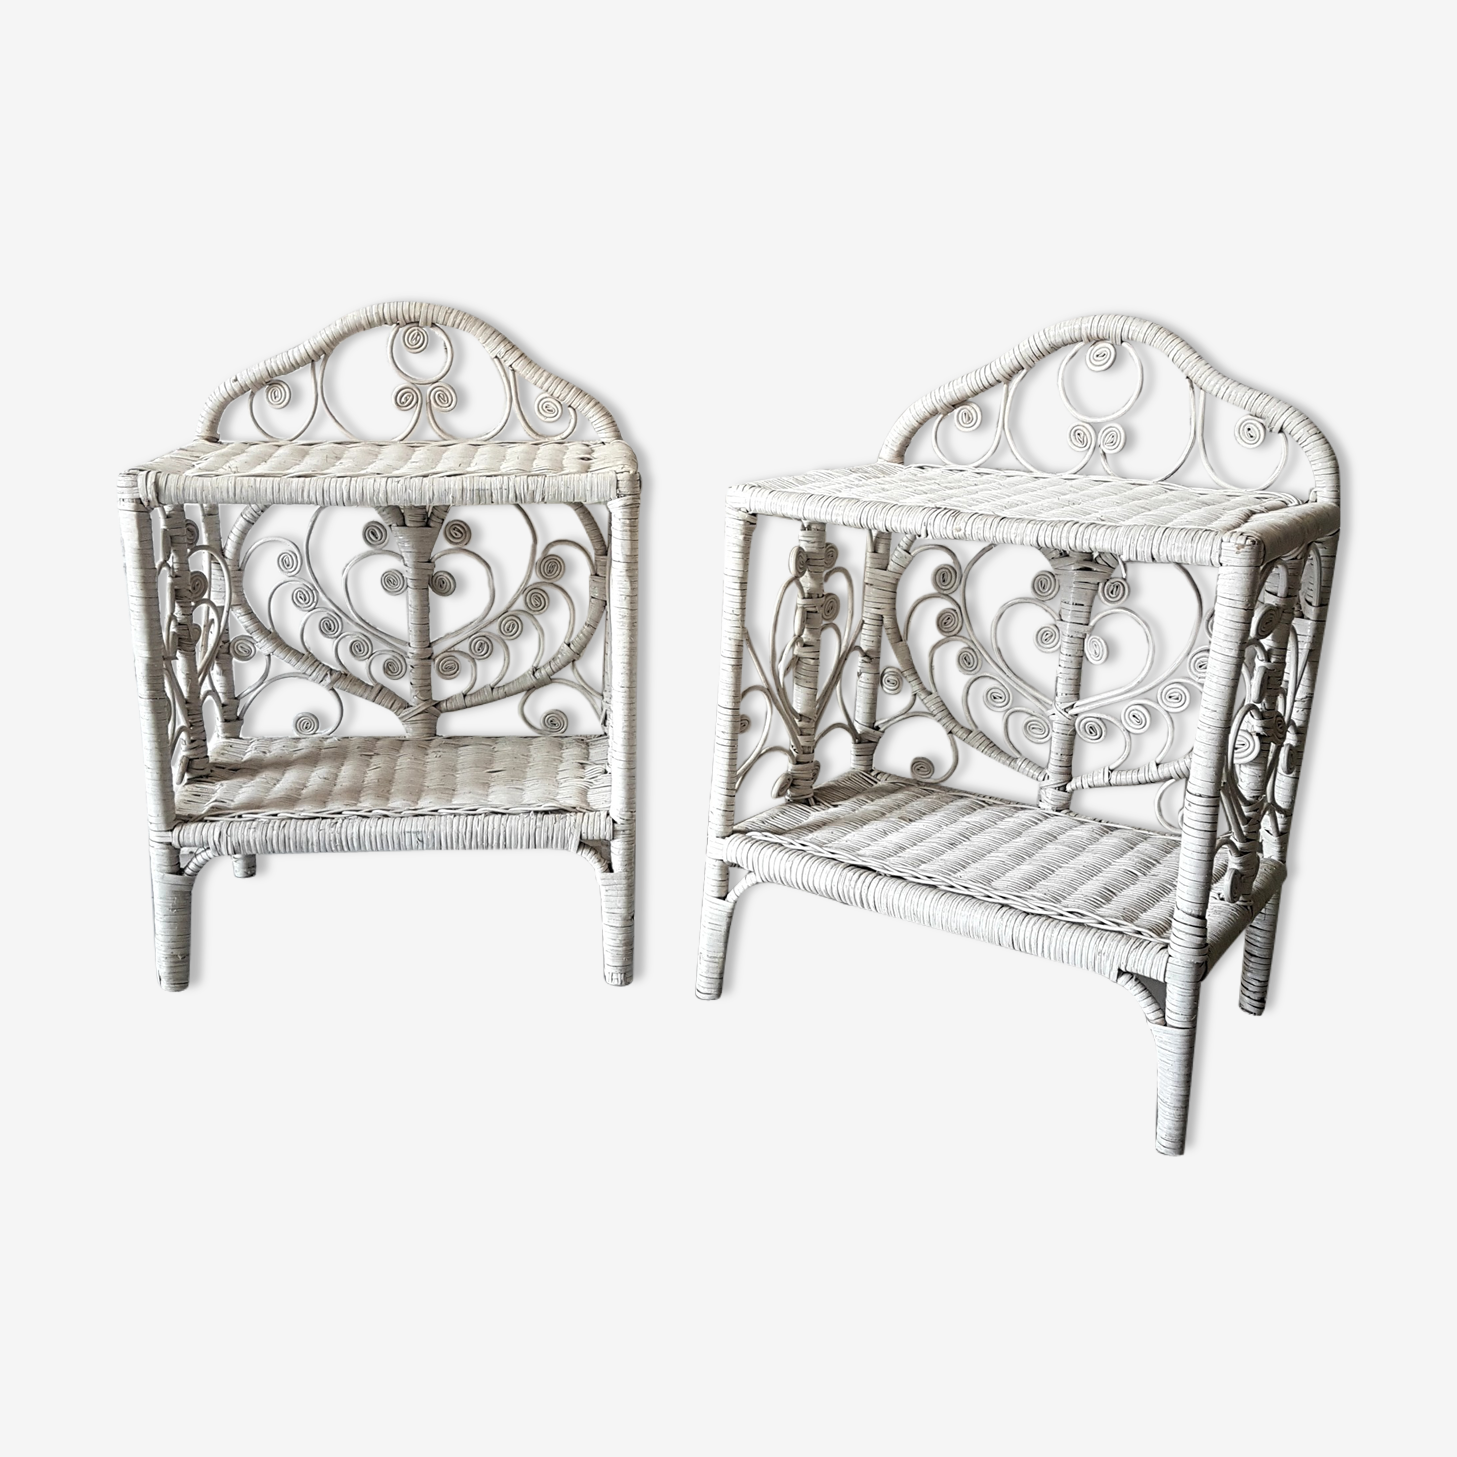 Pair of peacock bedside tables in white